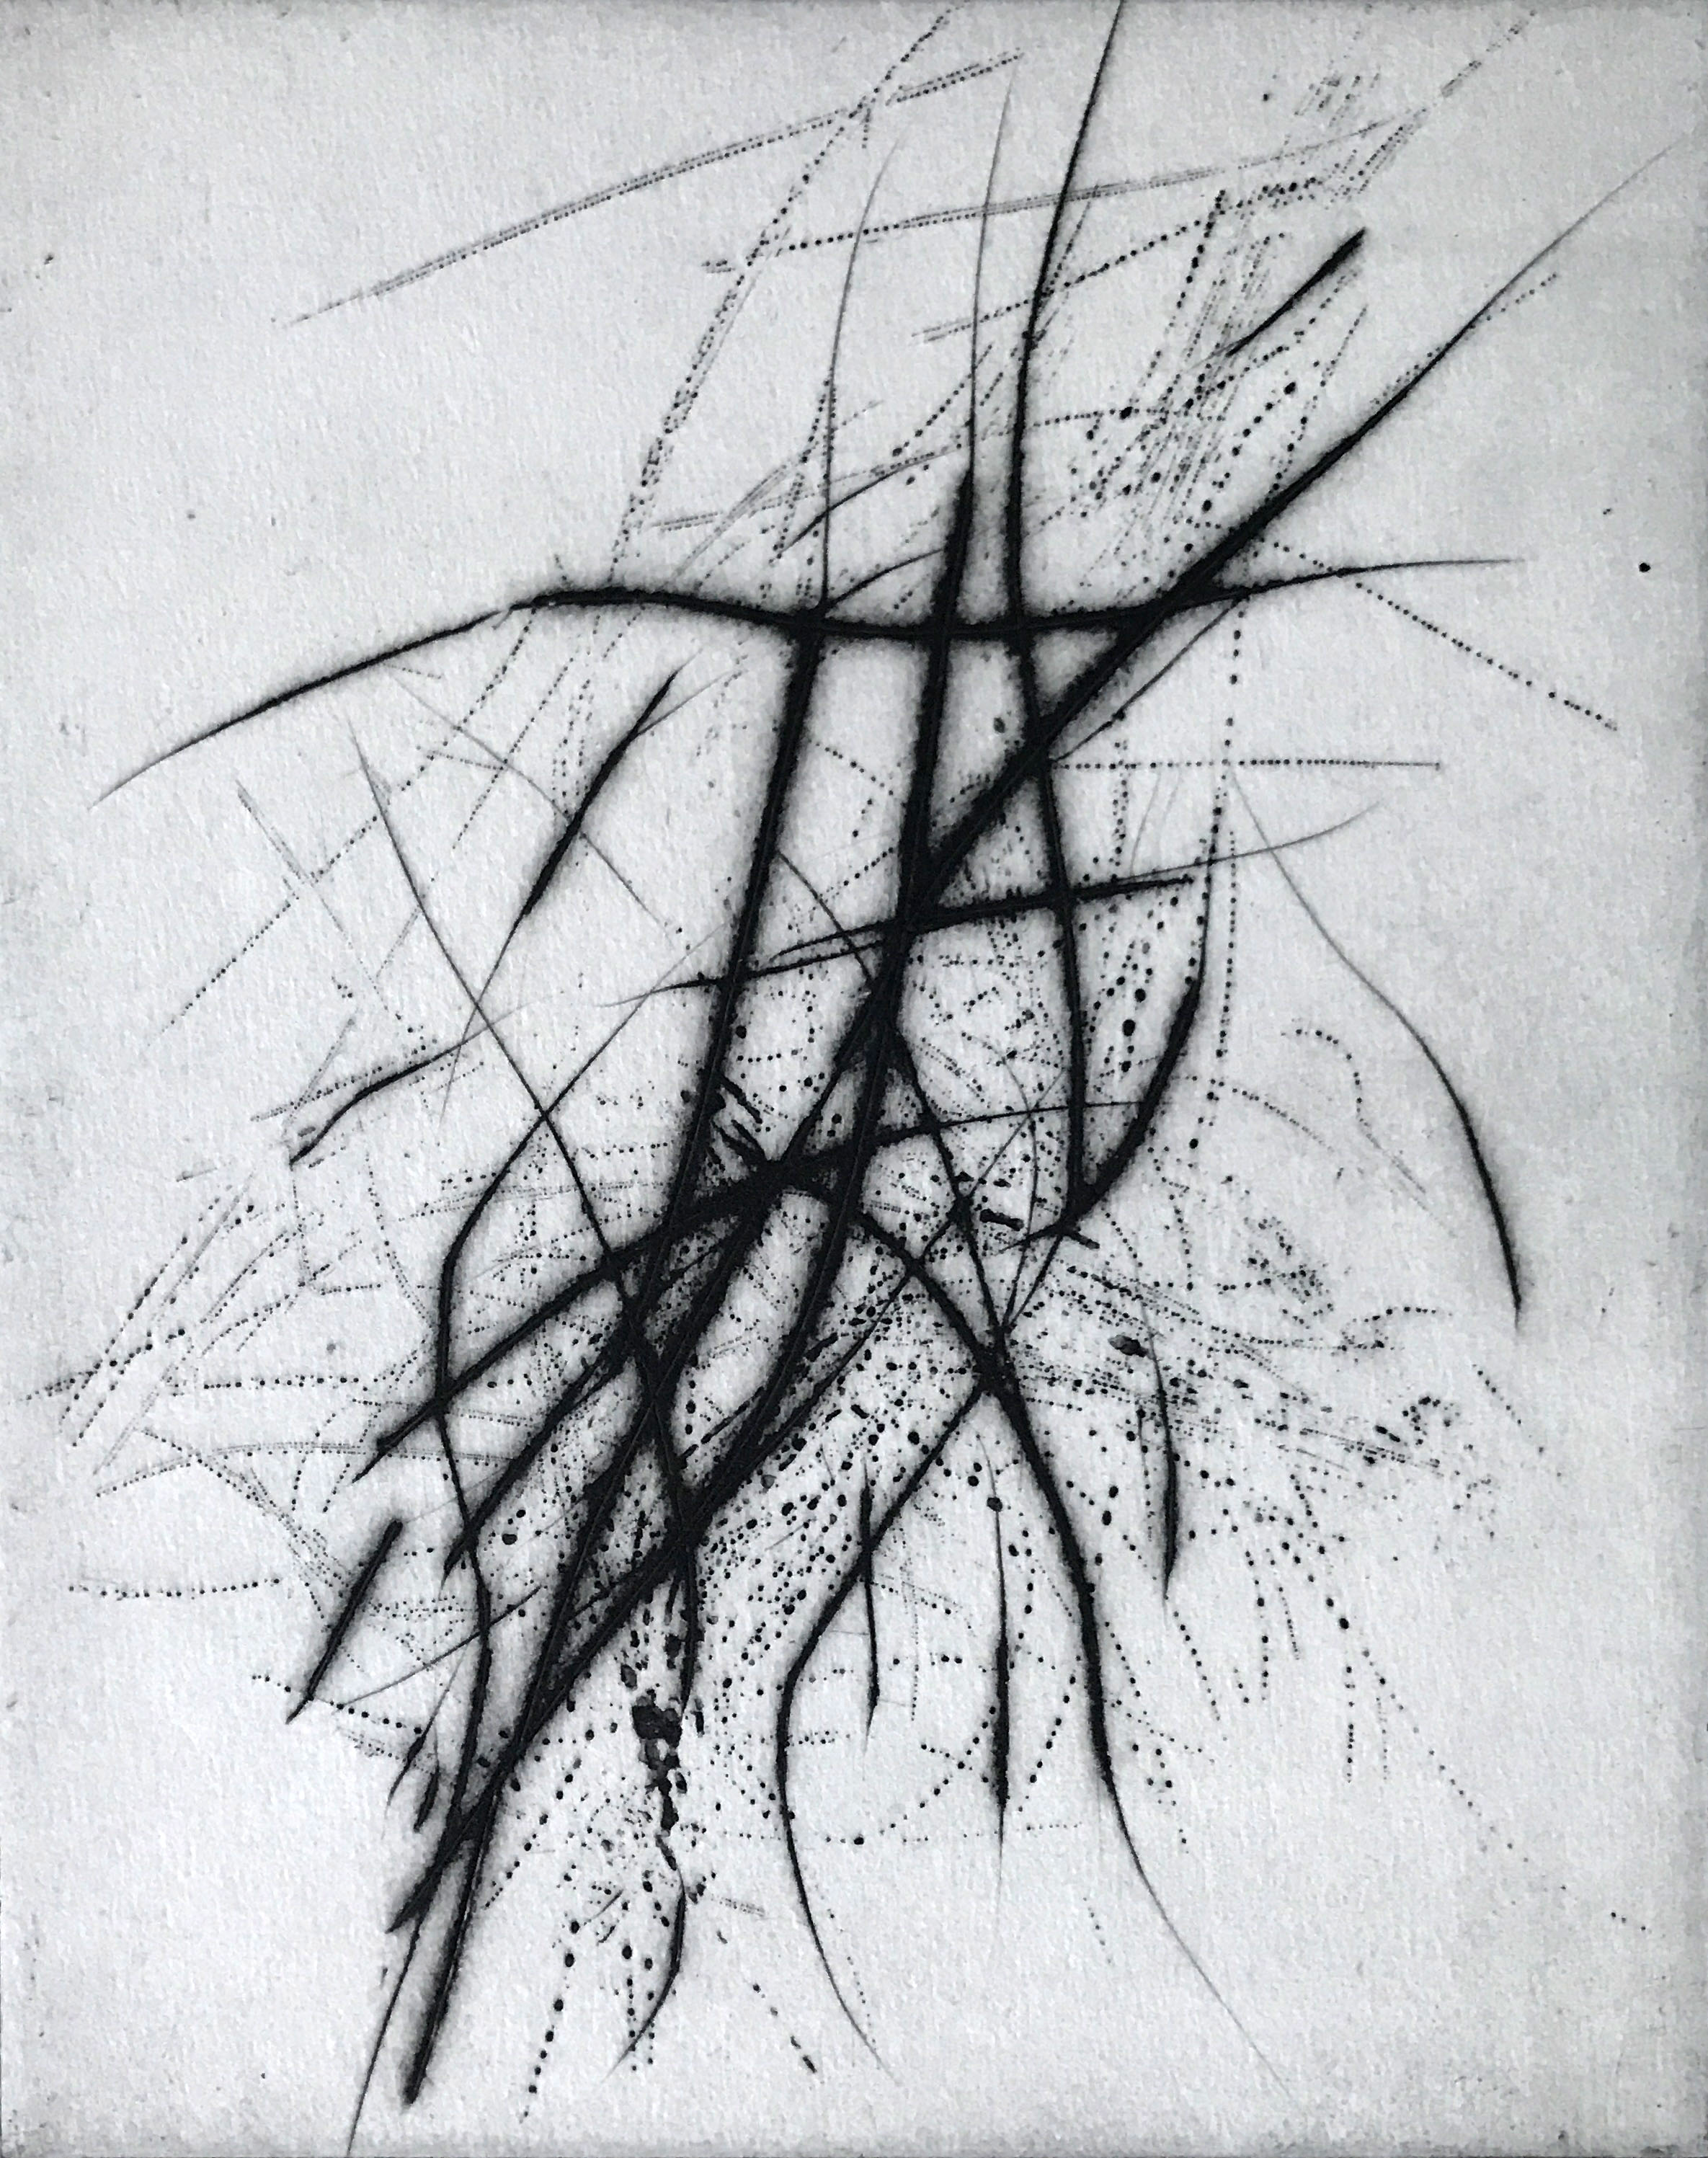 accord, to Alfred Schnittke 2020 reservage/drypoint 25 x 20 xm plate